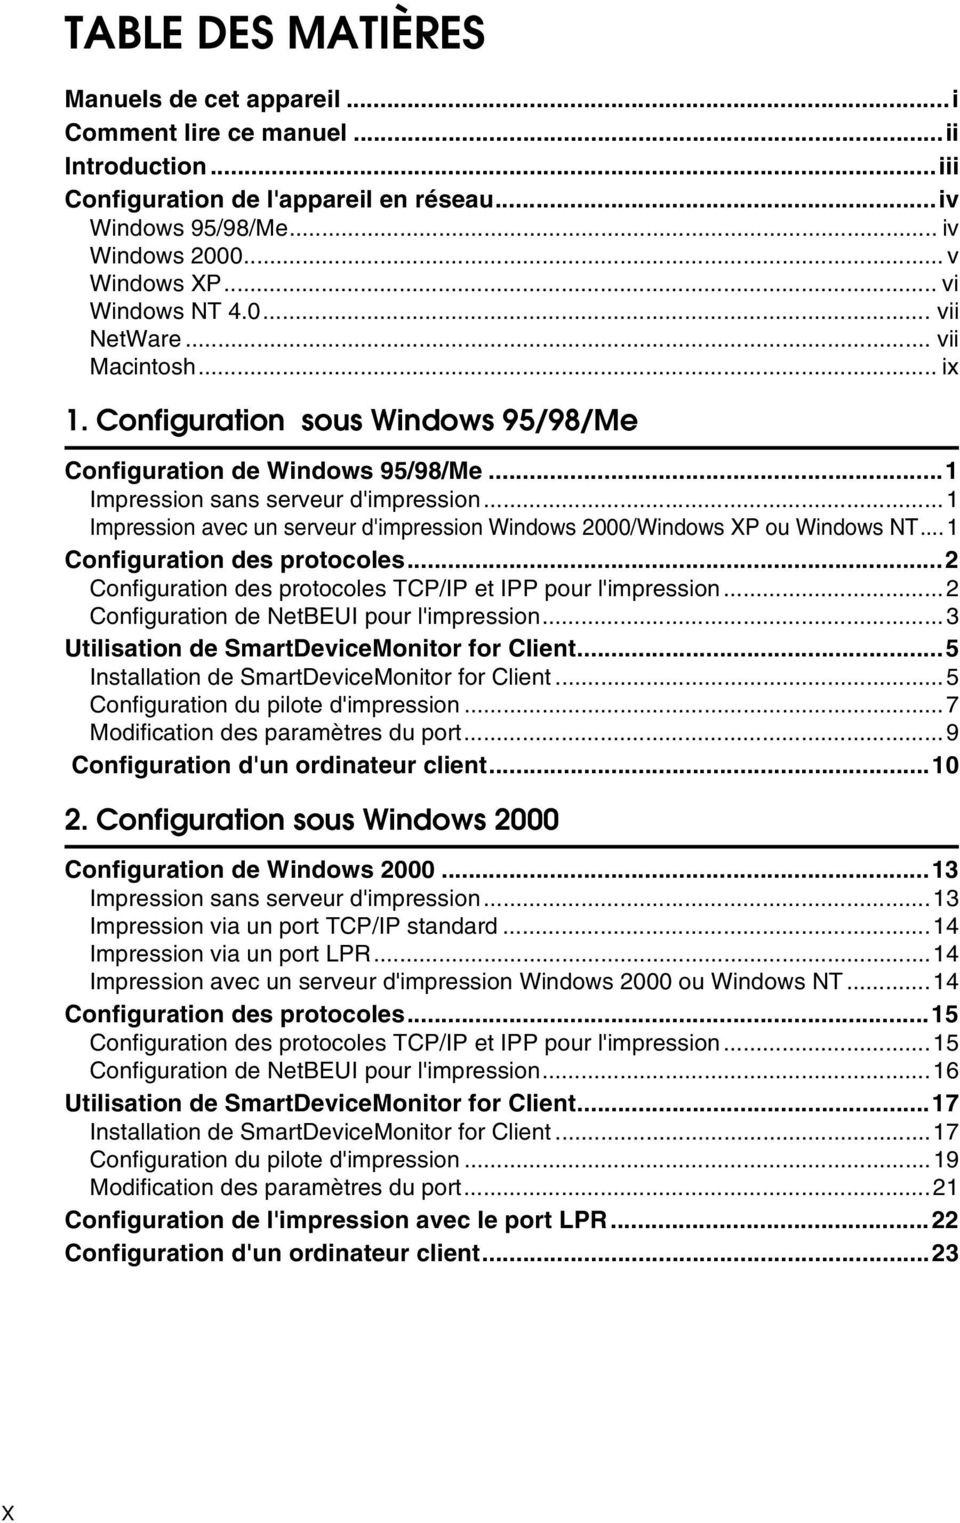 ..1 Impression avec un serveur d'impression Windows 2000/Windows XP ou Windows NT... 1 Configuration des protocoles...2 Configuration des protocoles TCP/IP et IPP pour l'impression.